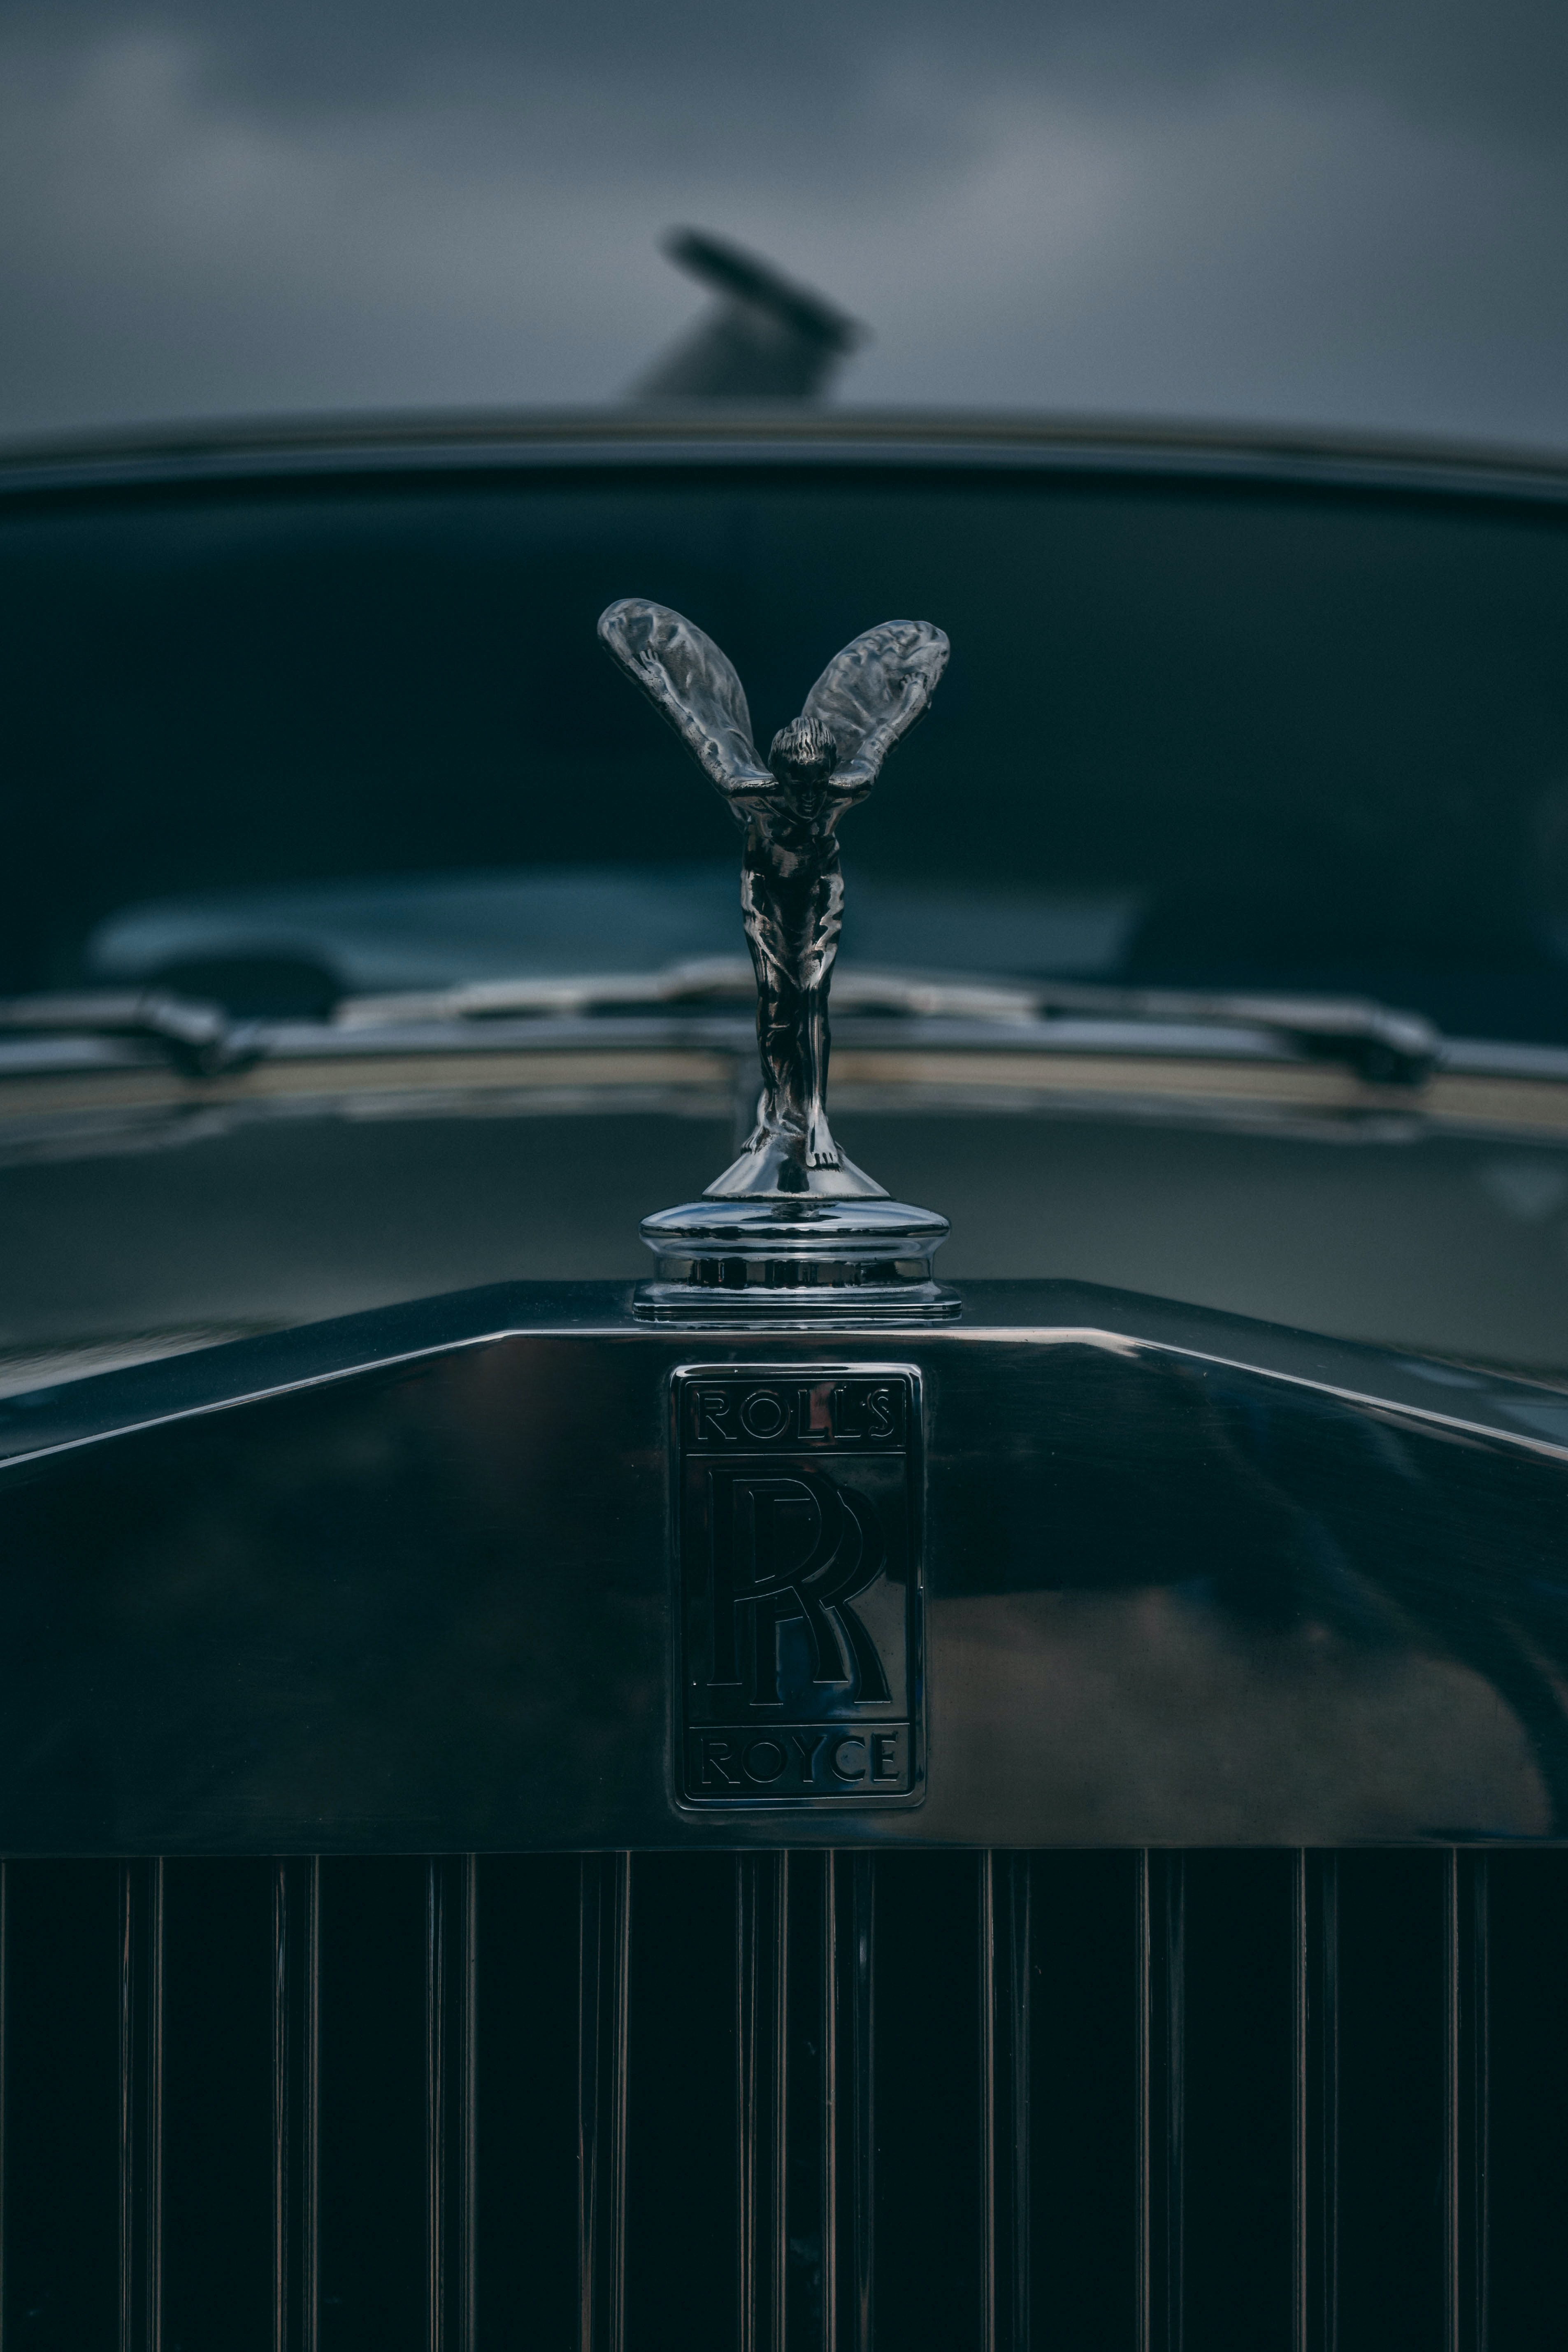 Rolls Royce Phantom Pictures Download Free Images On Unsplash